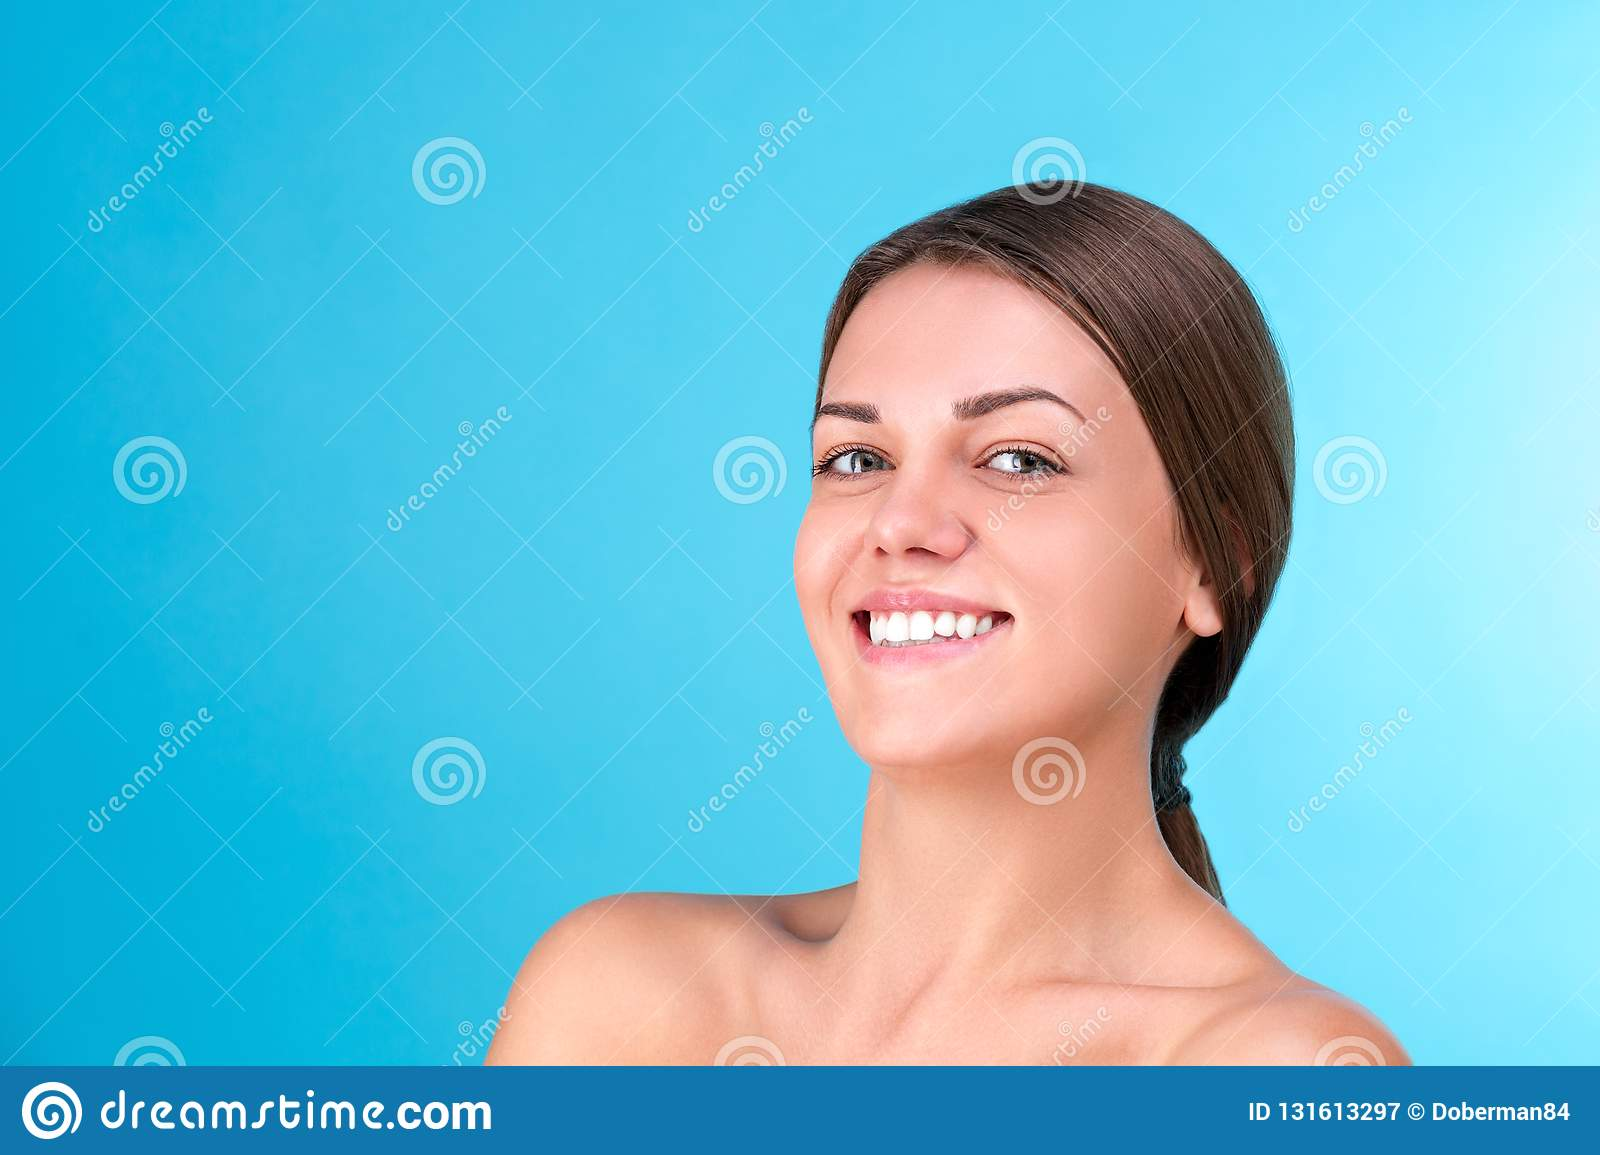 Stock Photo of Half-naked young women laughing face to